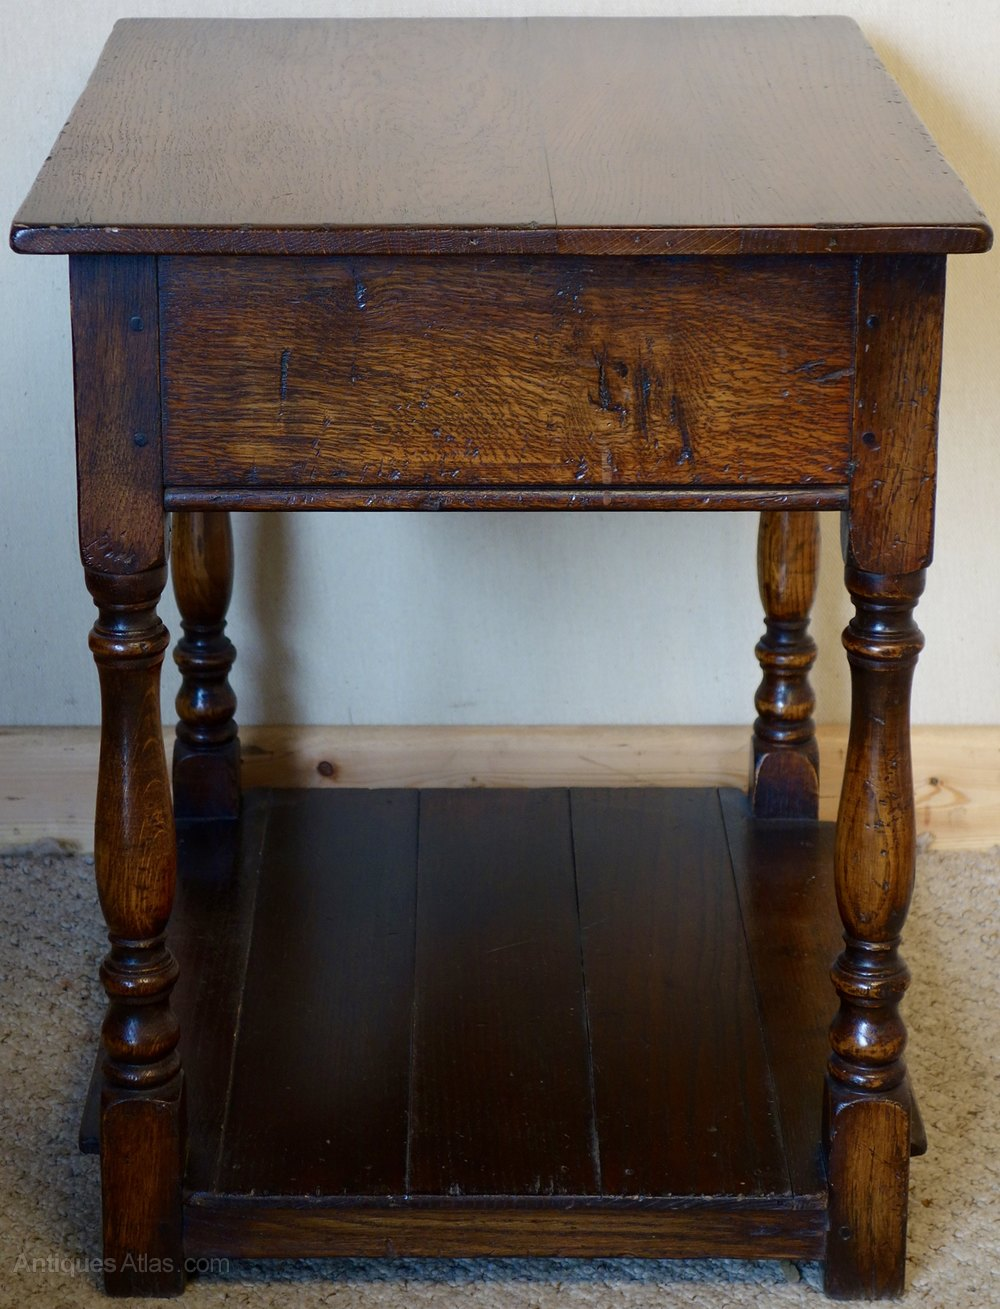 Antiques atlas distressed oak lamp table with drawer distressed oak lamp table with drawer vintage and retro side tables lamp side small alt5 geotapseo Choice Image